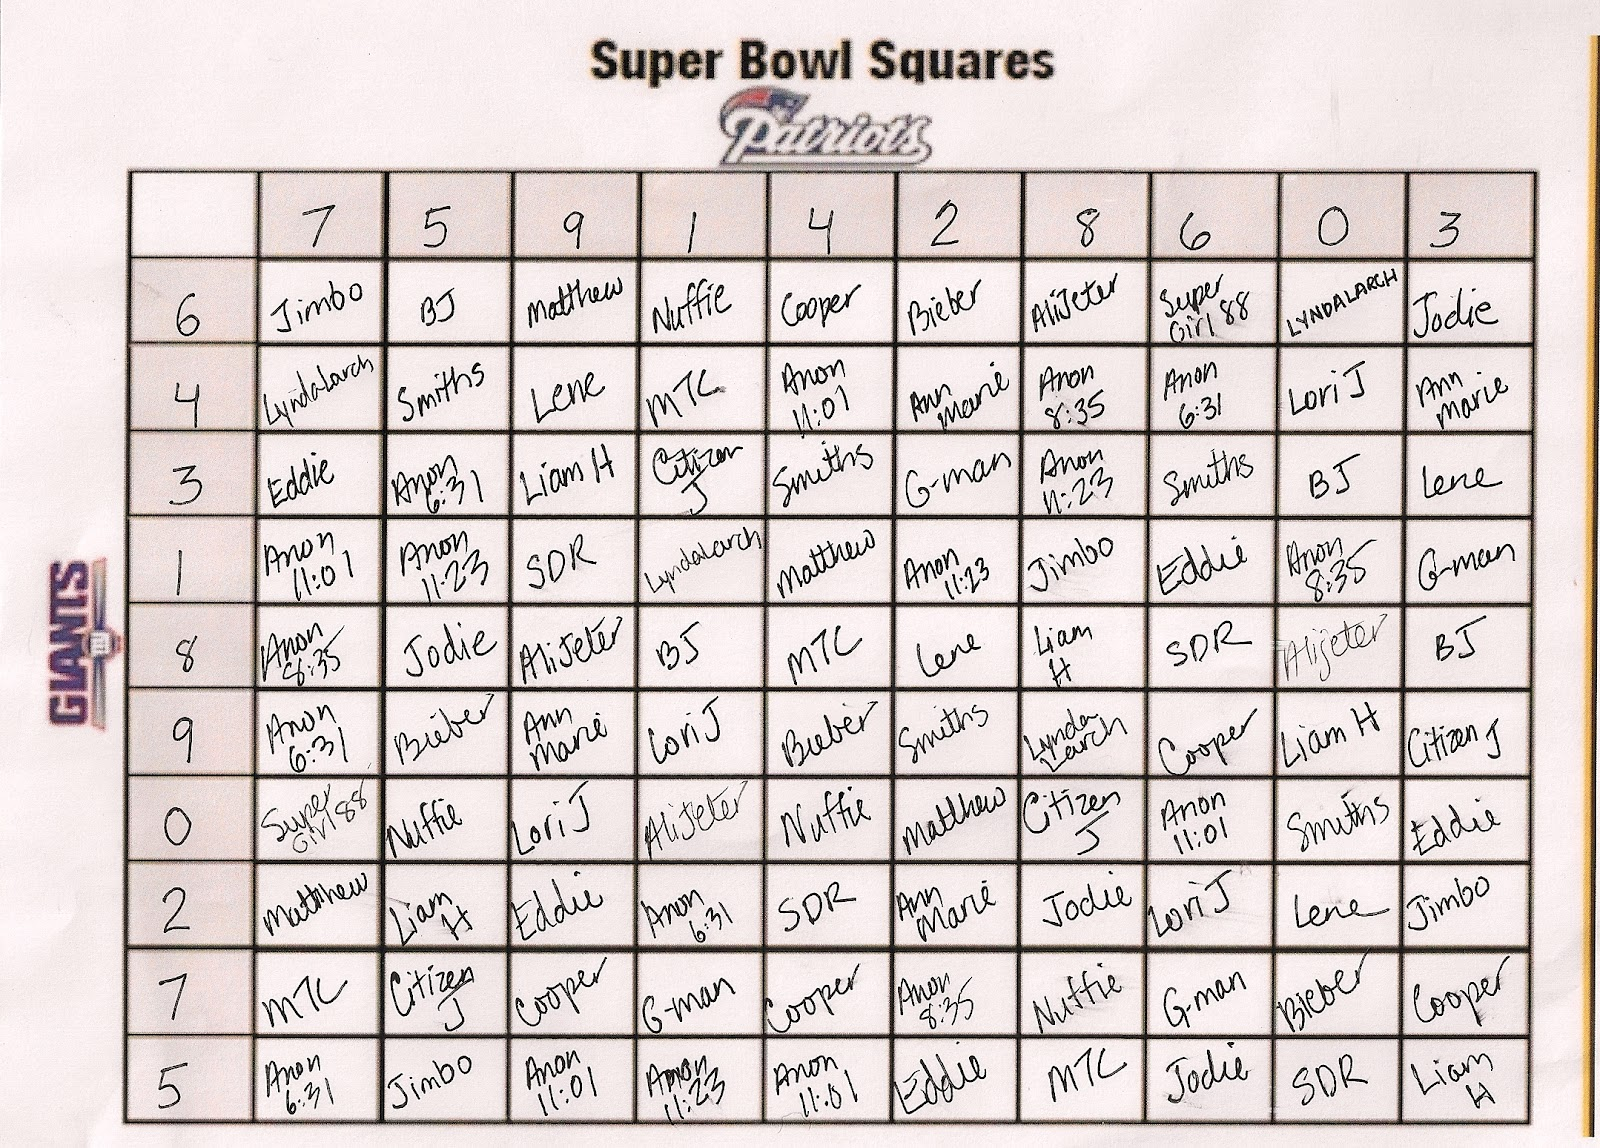 Super Bowl Squares Game Grid | Super Bowl Squares 2016